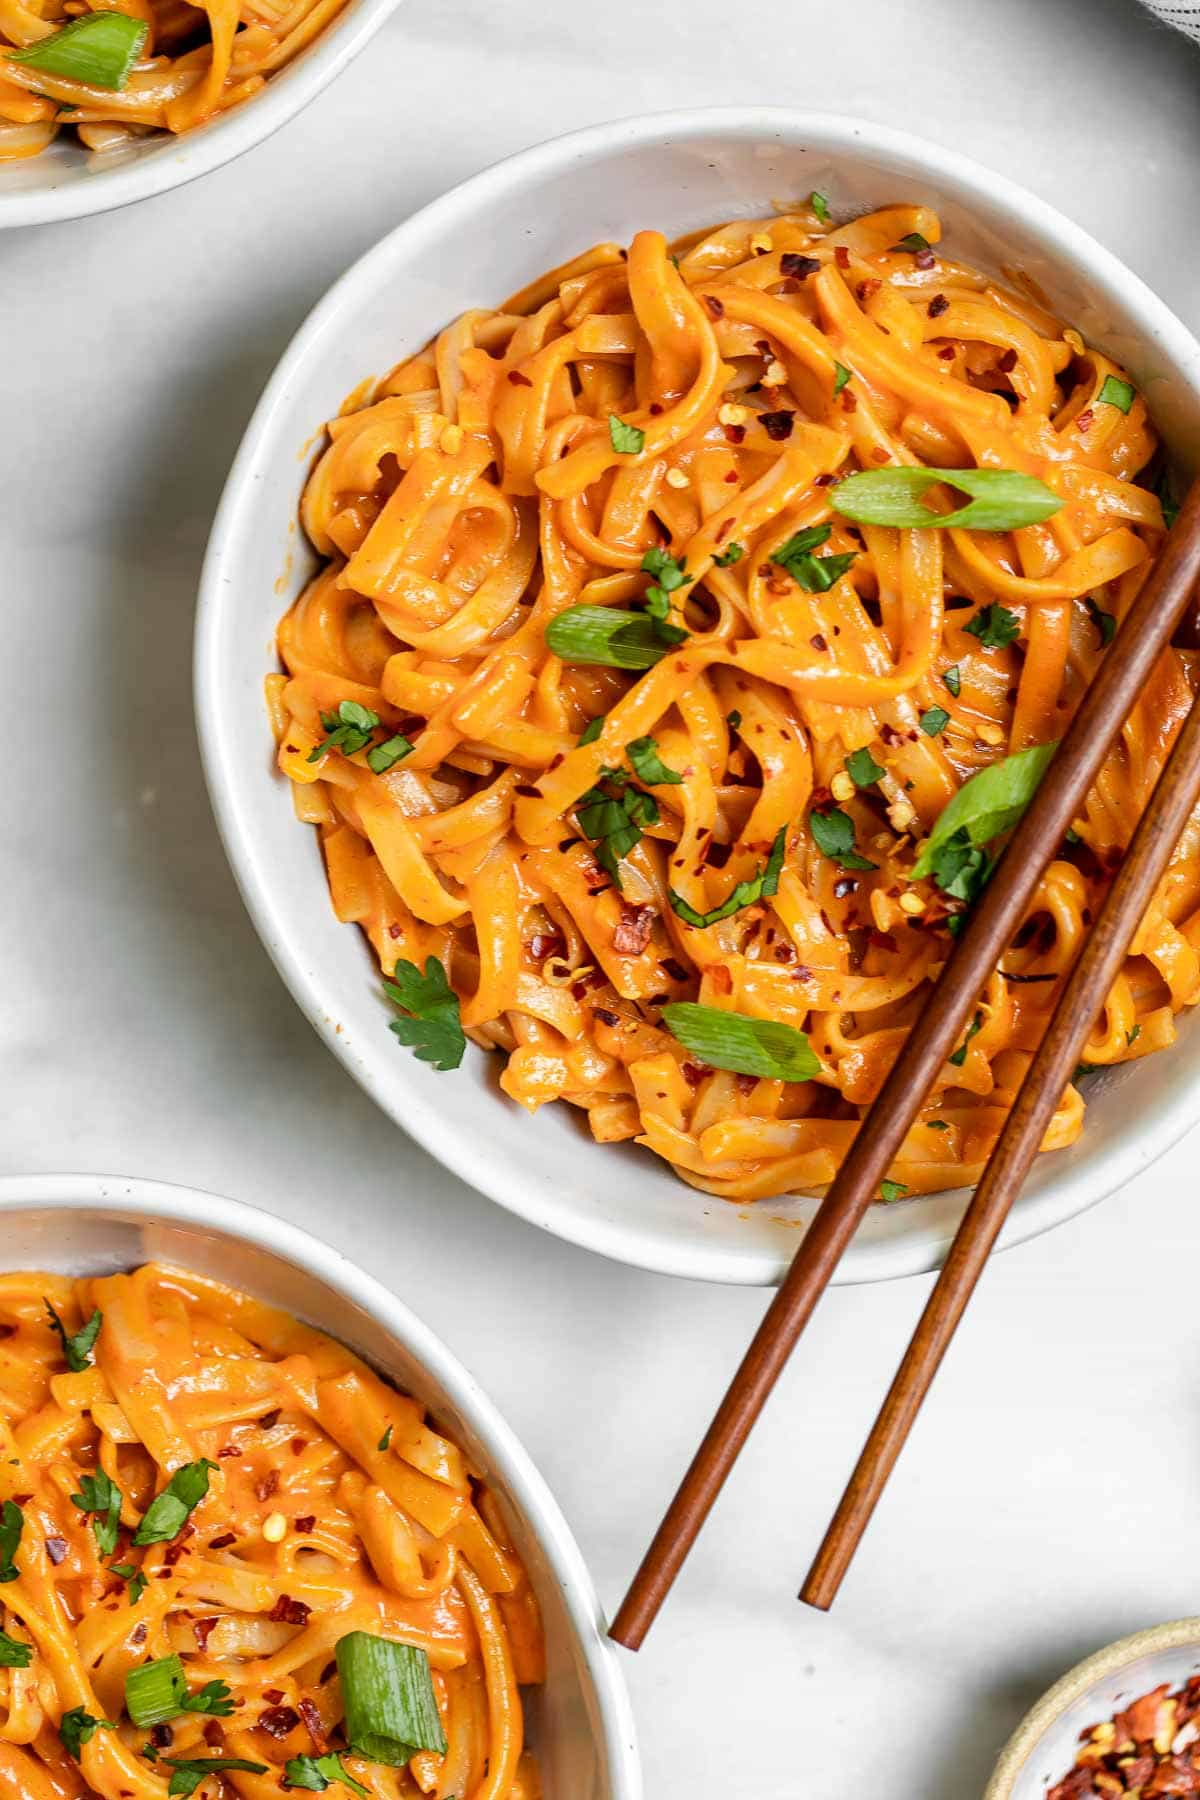 Overhead image of the red curry noodles with red pepper flakes on top.